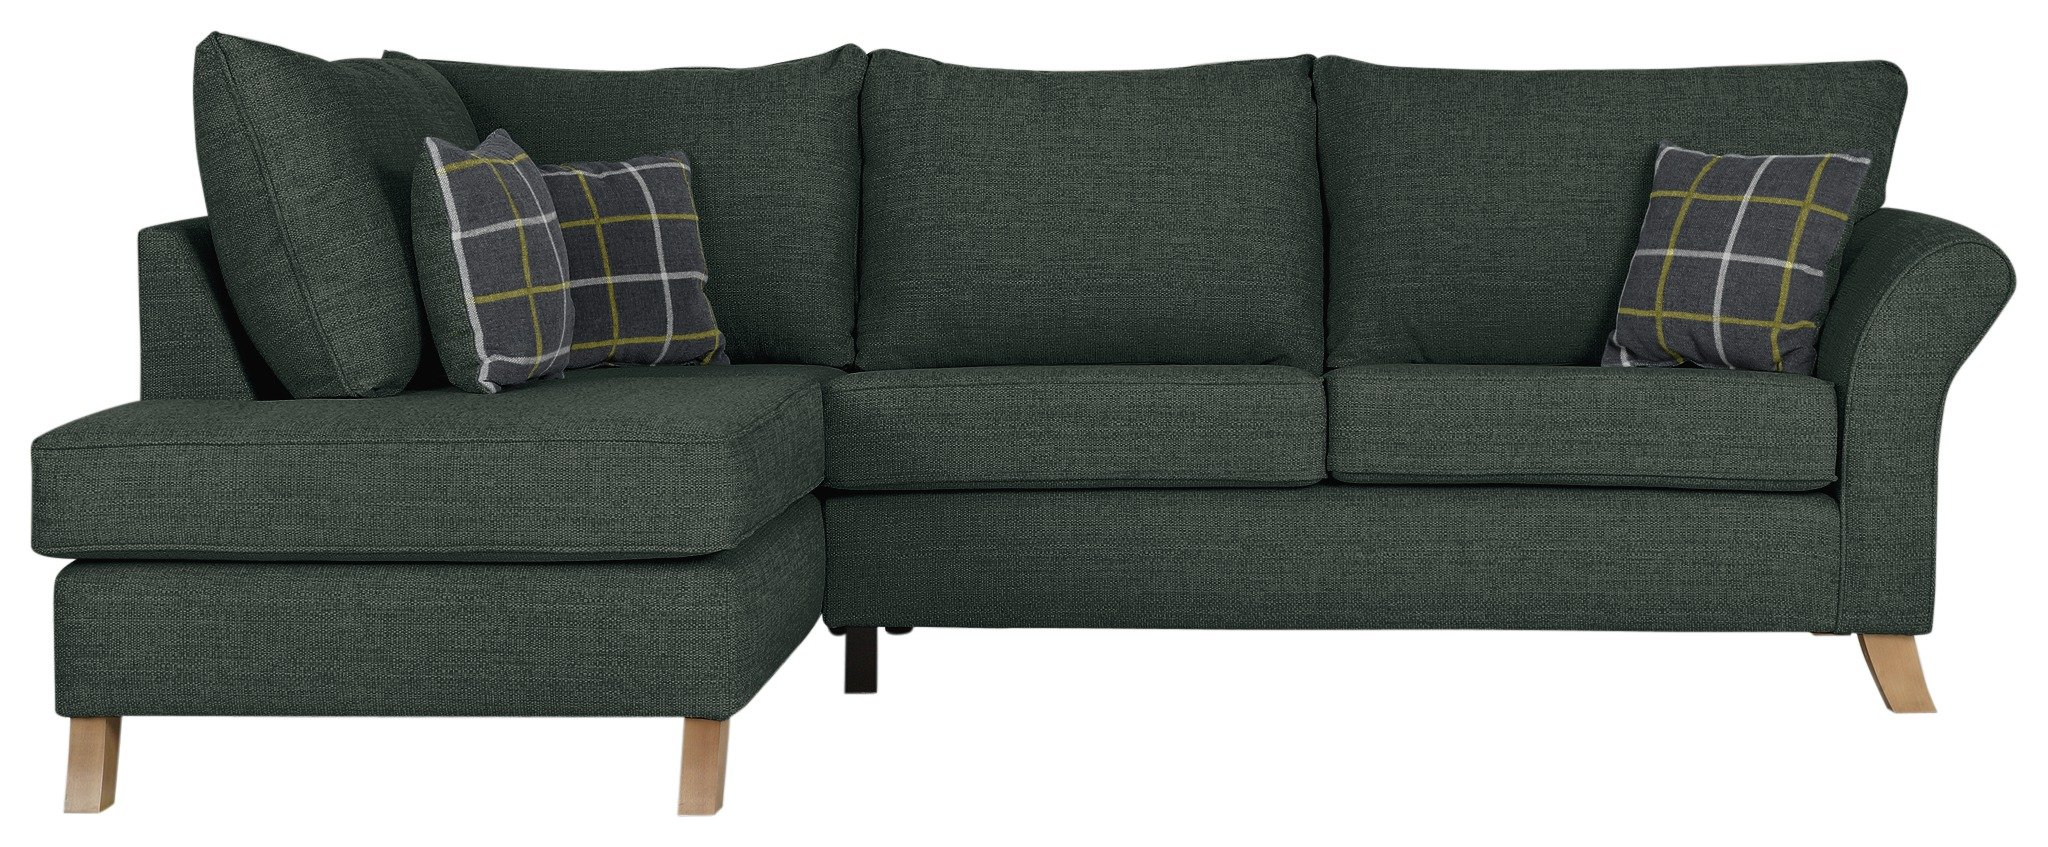 Argos Home - Kayla High Back Left Hand Corner - Sofa - Charcoal